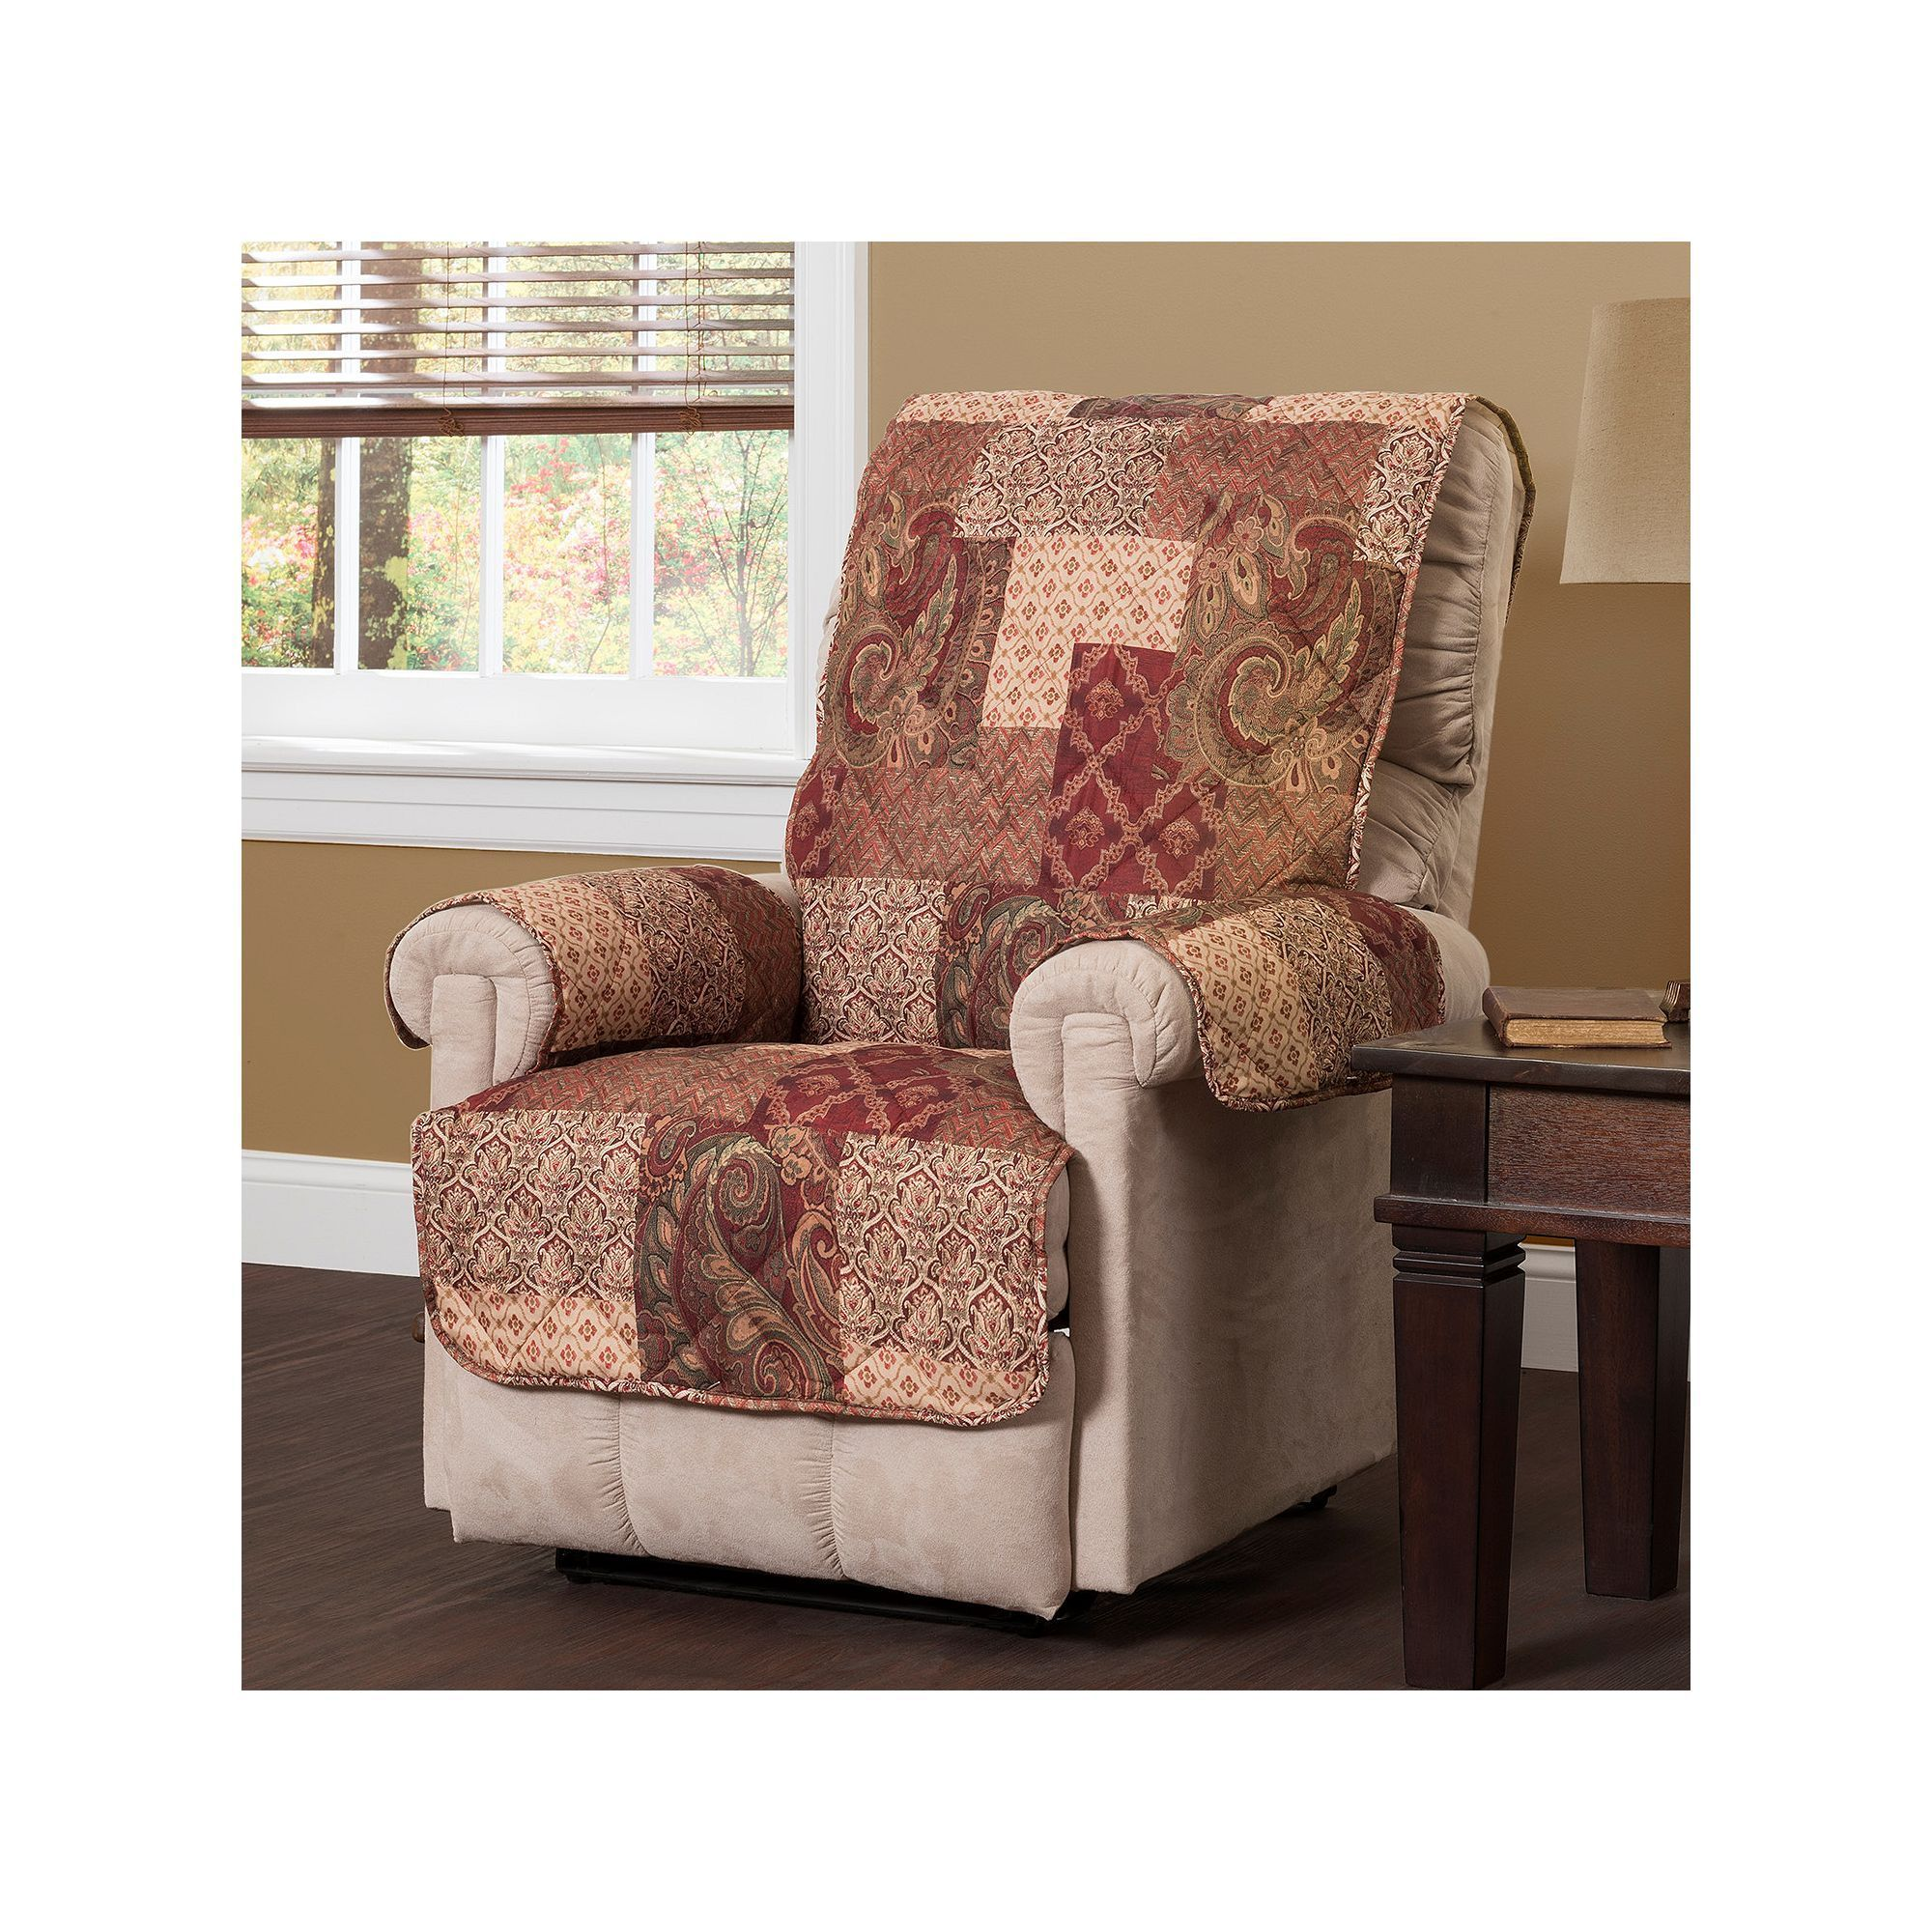 Paisley Patch Recliner Slipcover Multicolor